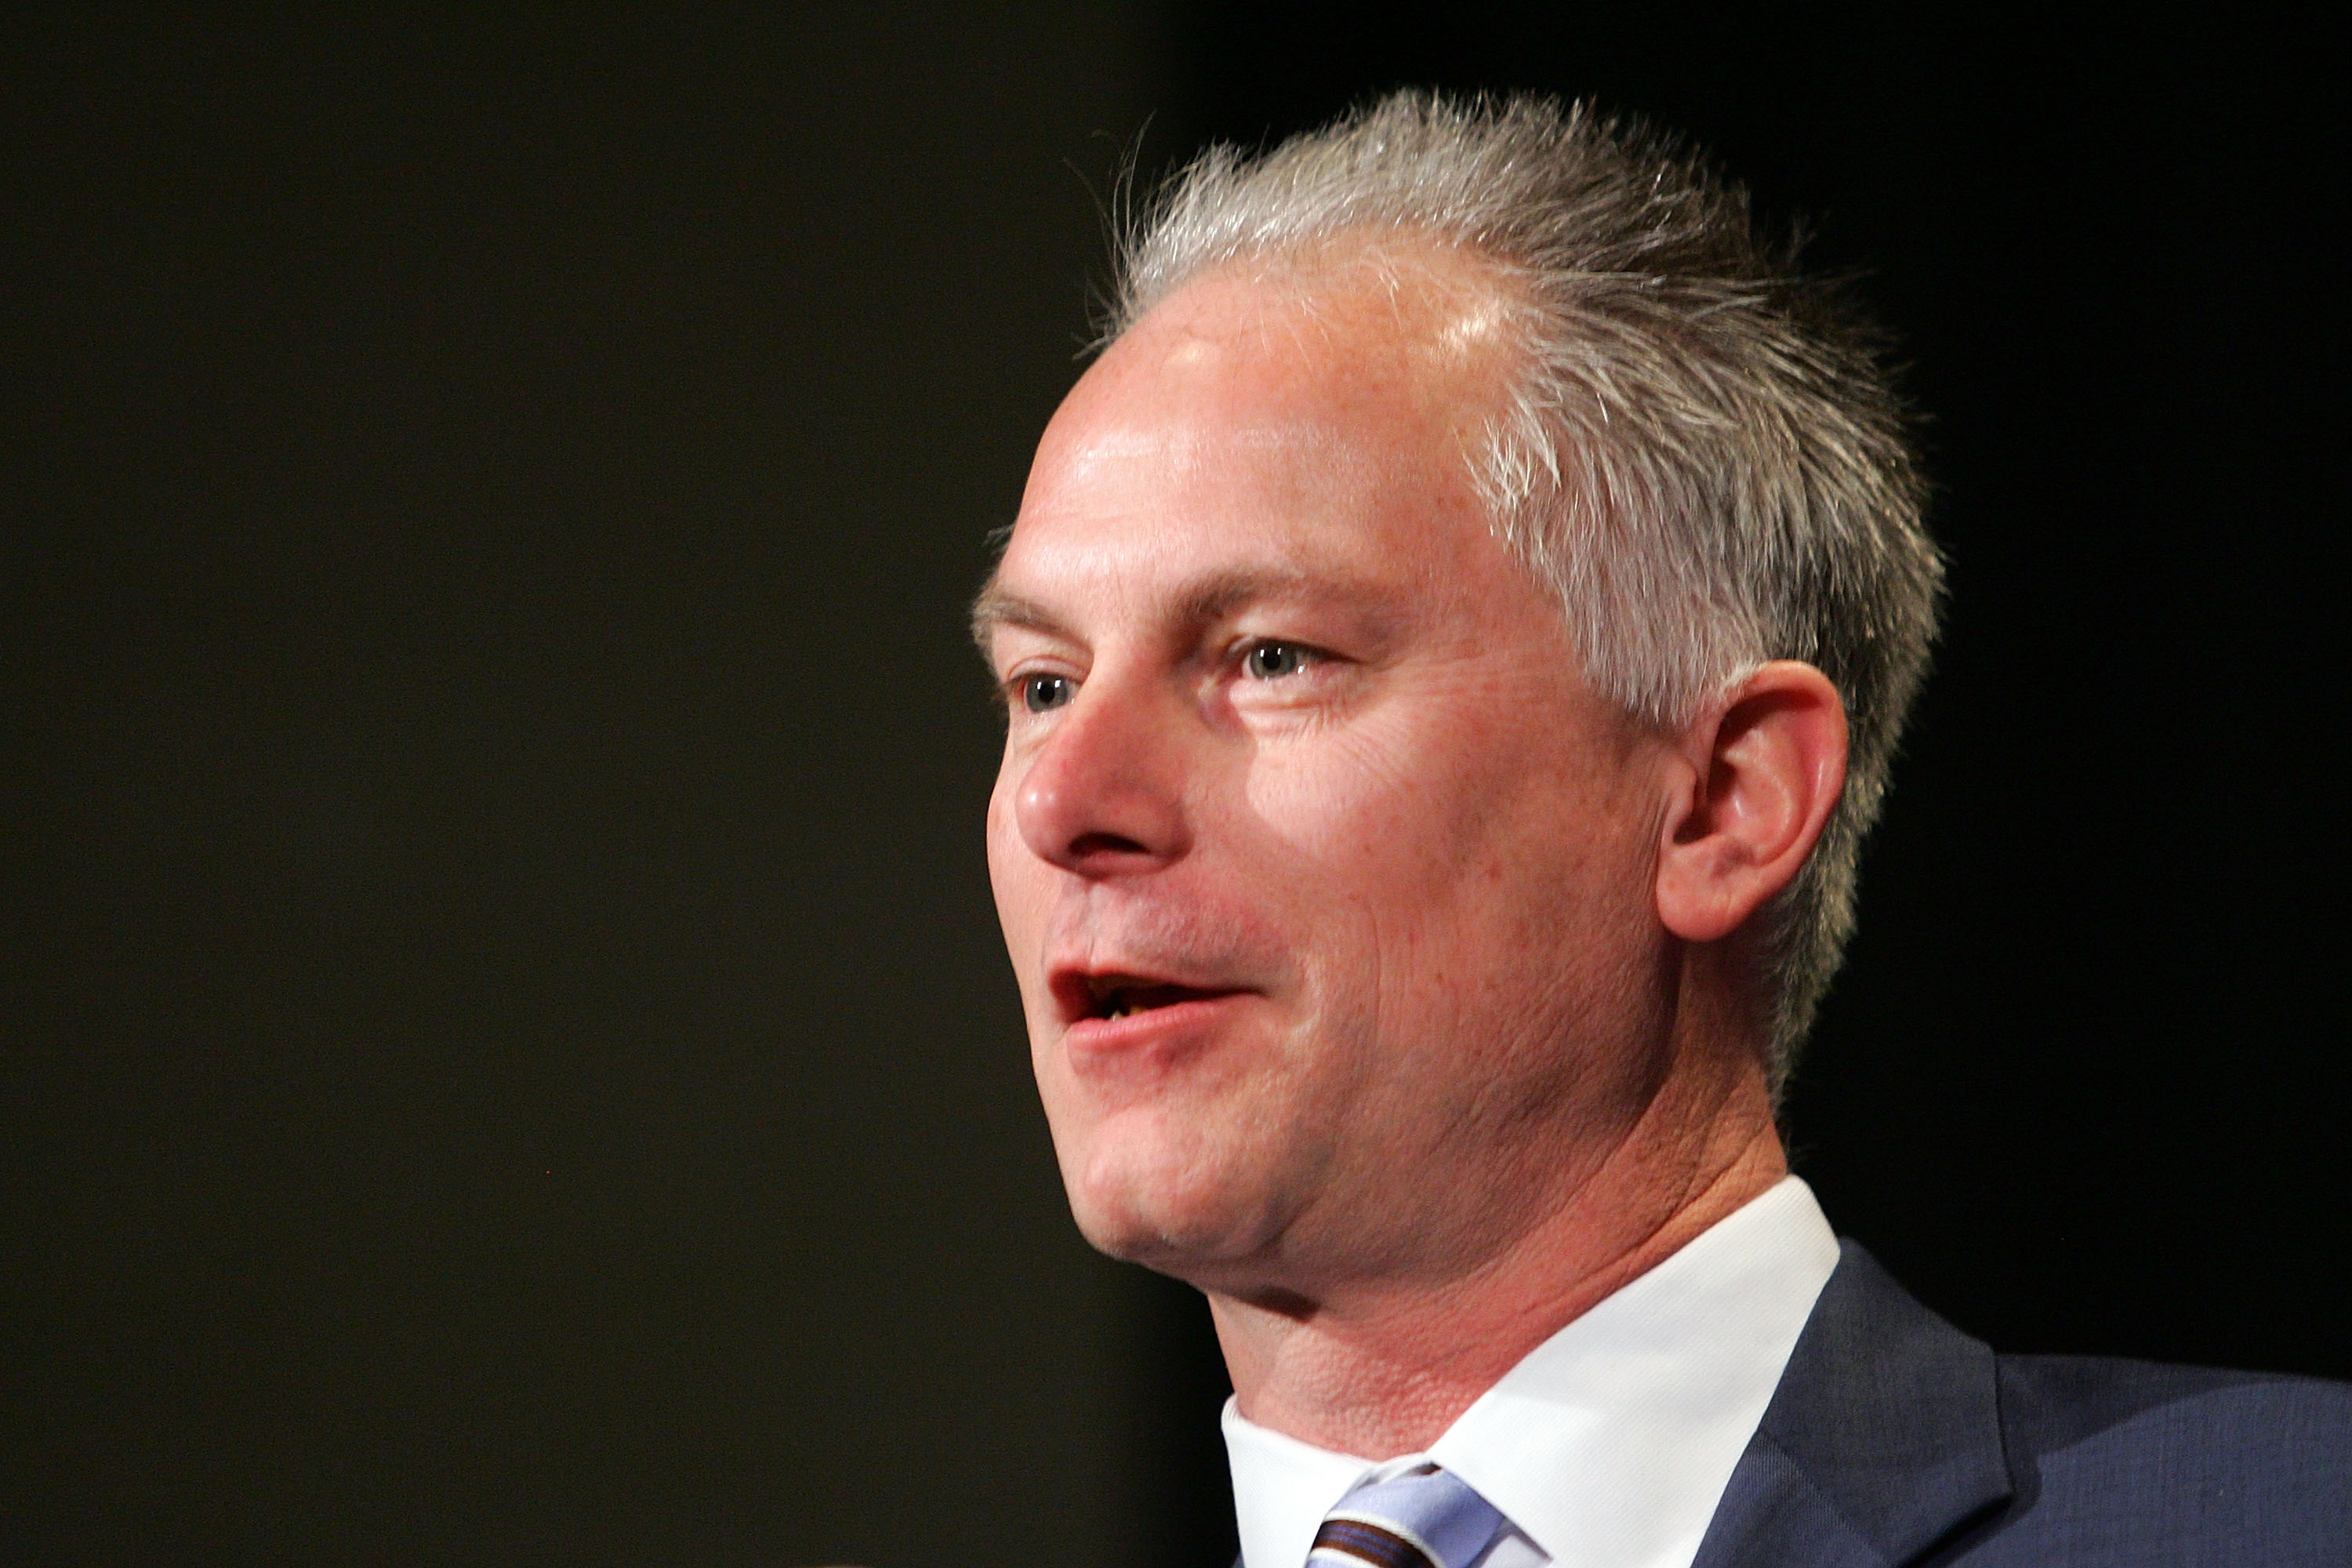 PHOENIX - JANUARY 31:  Kenny Mayne of ESPN asks a question during the GMC Defensive Player of the Year award news conference prior to Super Bowl XLII at the Phoenix Convention Center on January 31, 2008 in Phoenix, Arizona.  (Photo by Streeter Lecka/Getty